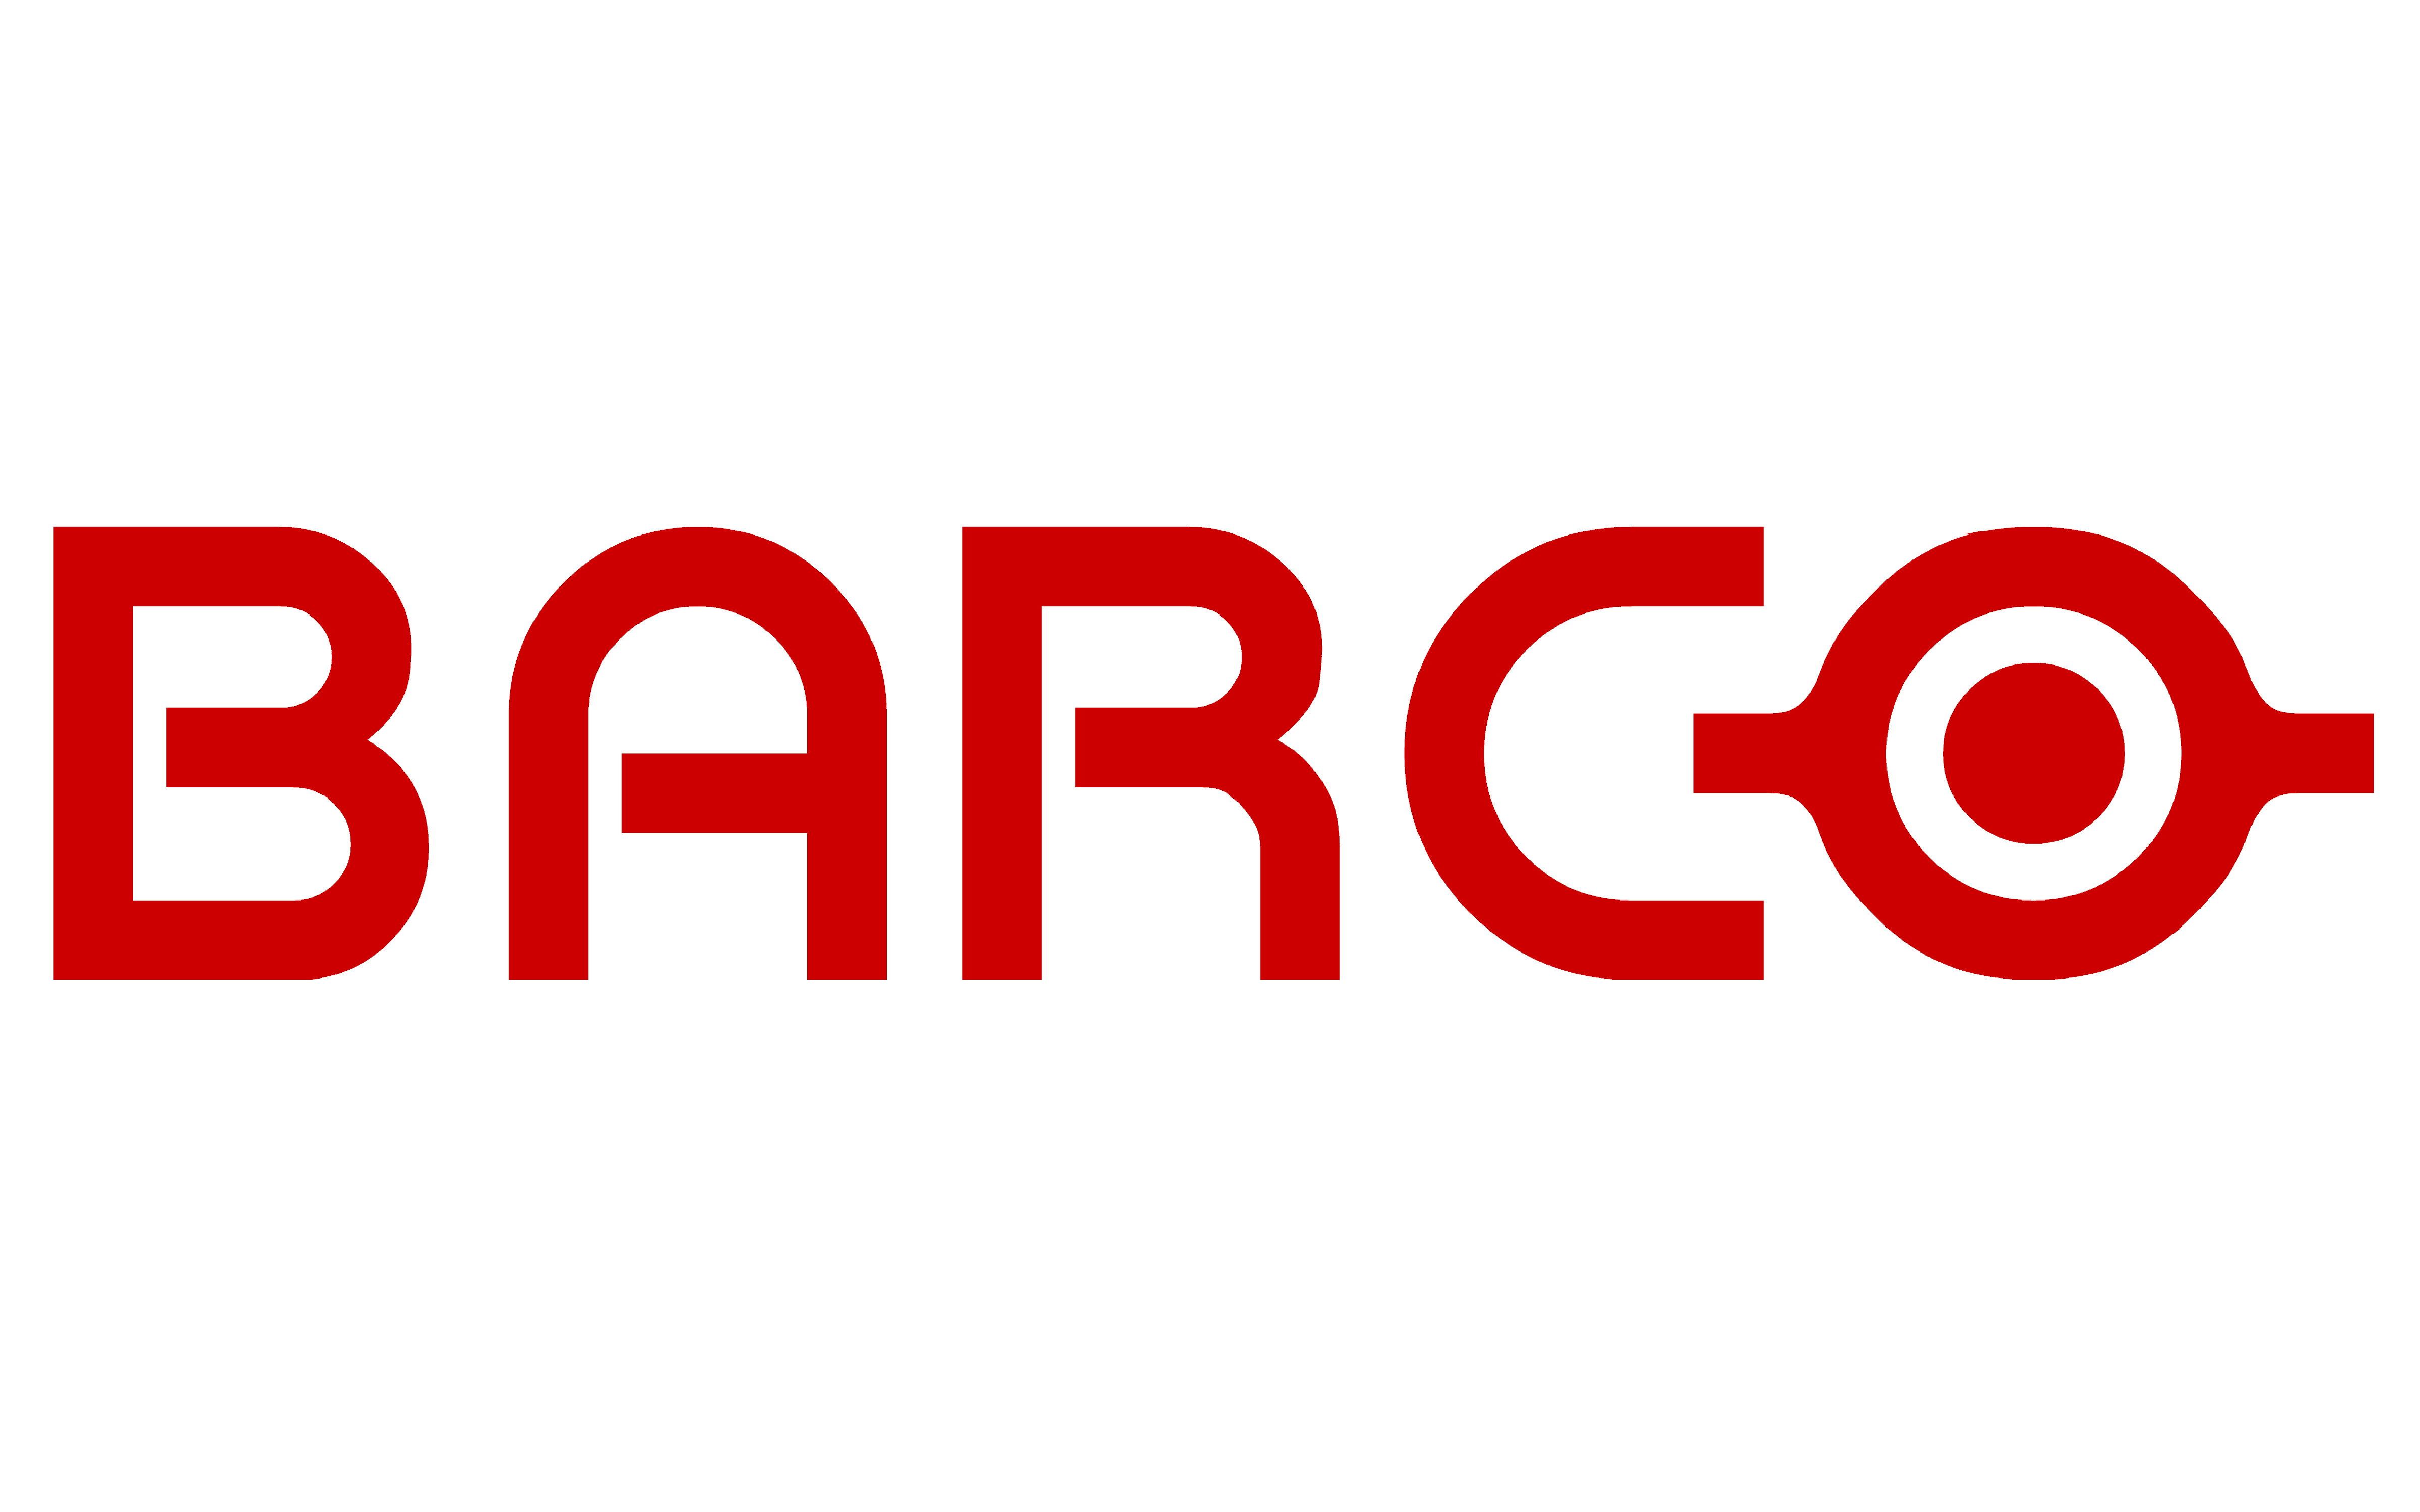 Drivers by Barco